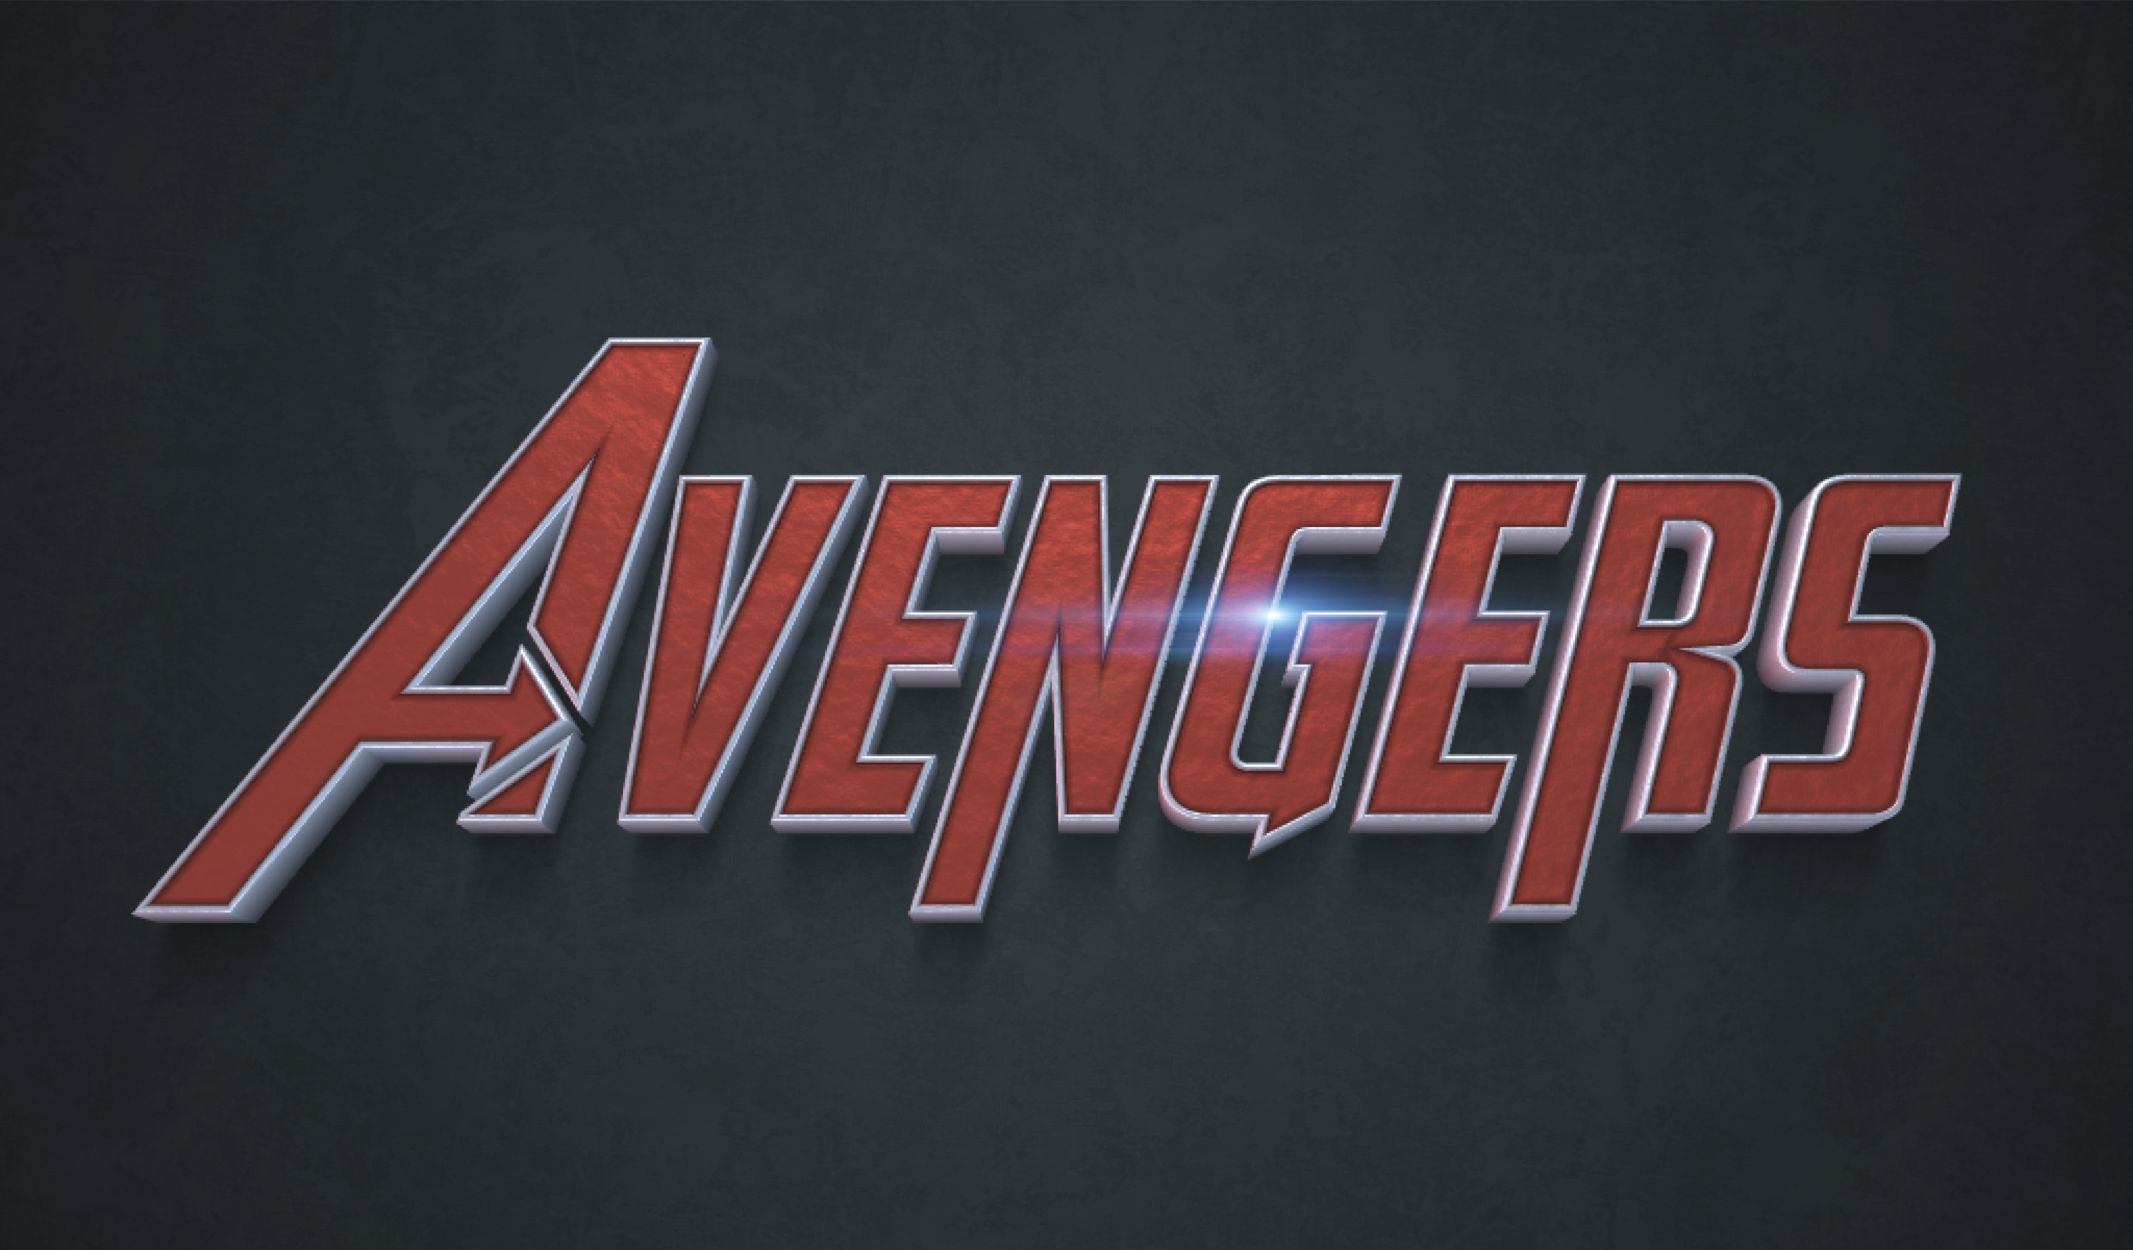 Create Avengers logo with our How to video for ArtText